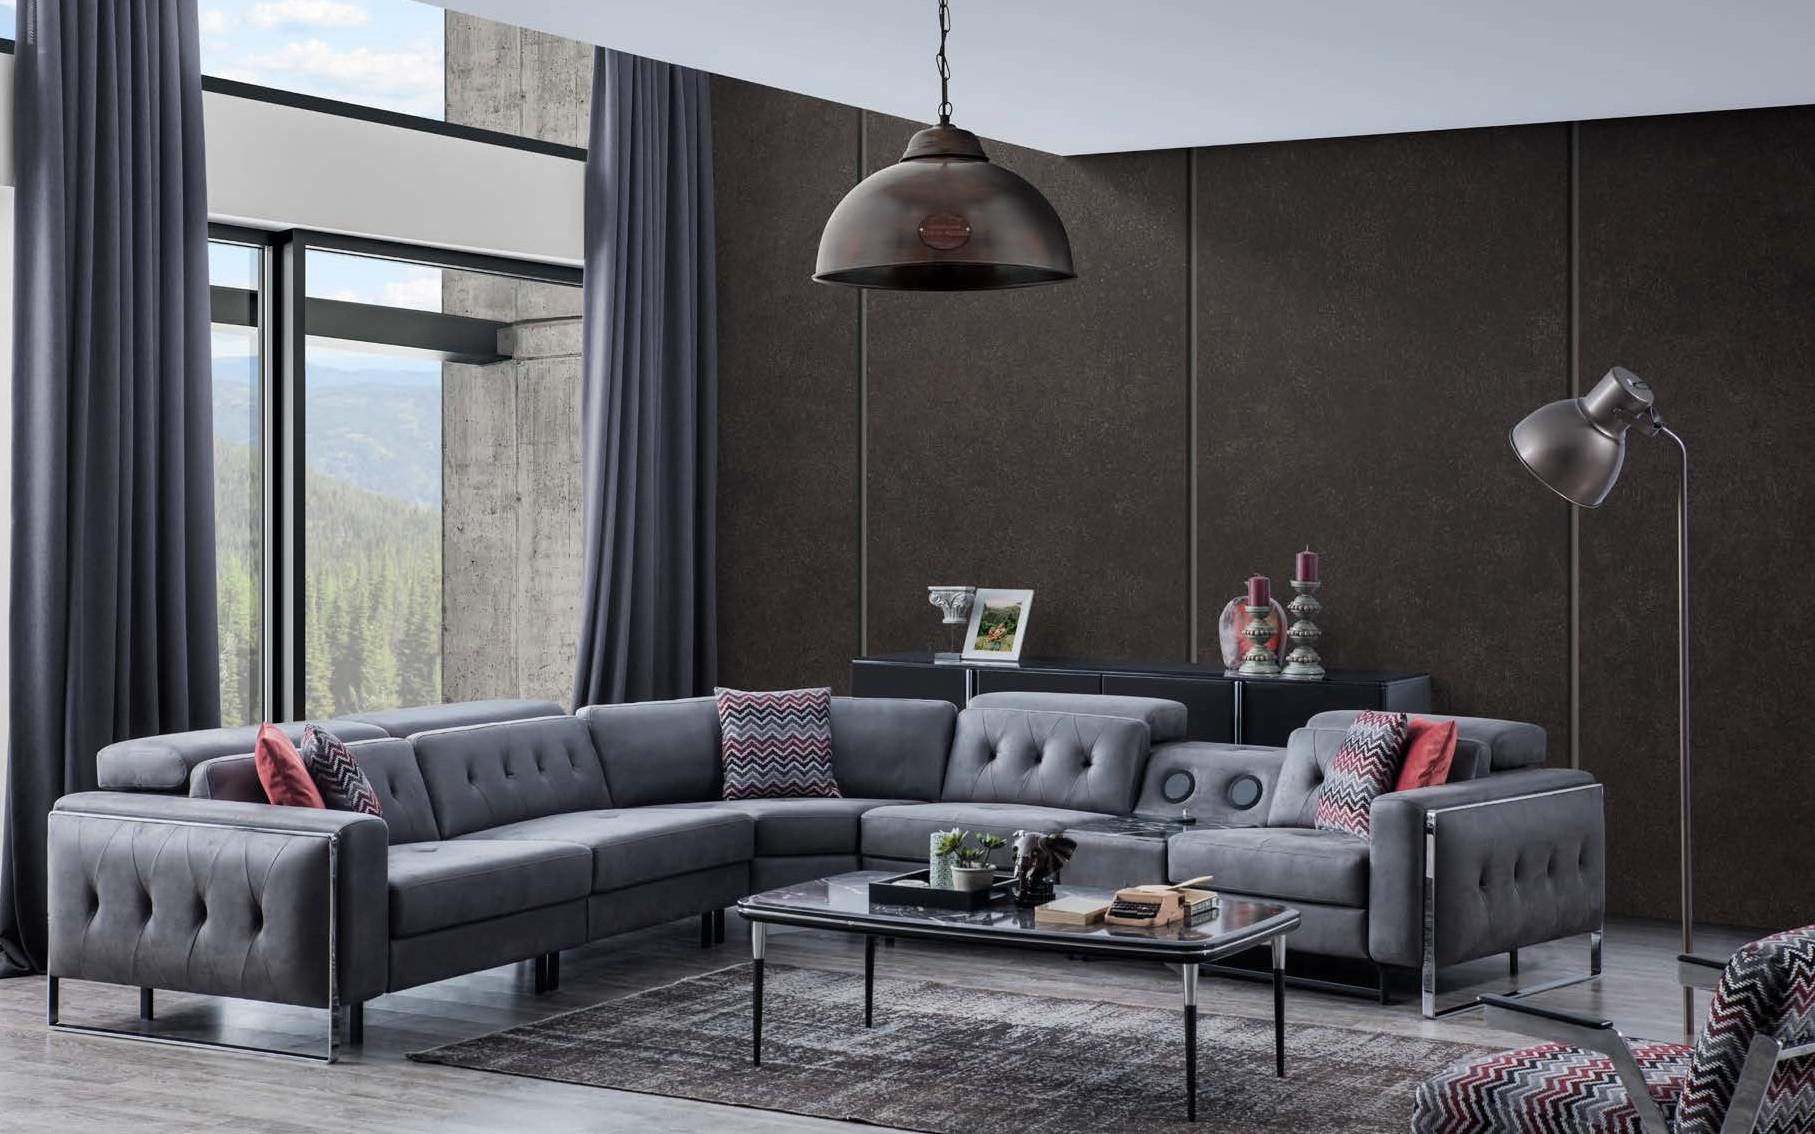 HOW TO FIND THE BEST SOFA FOR YOUR HOME ONLINE?